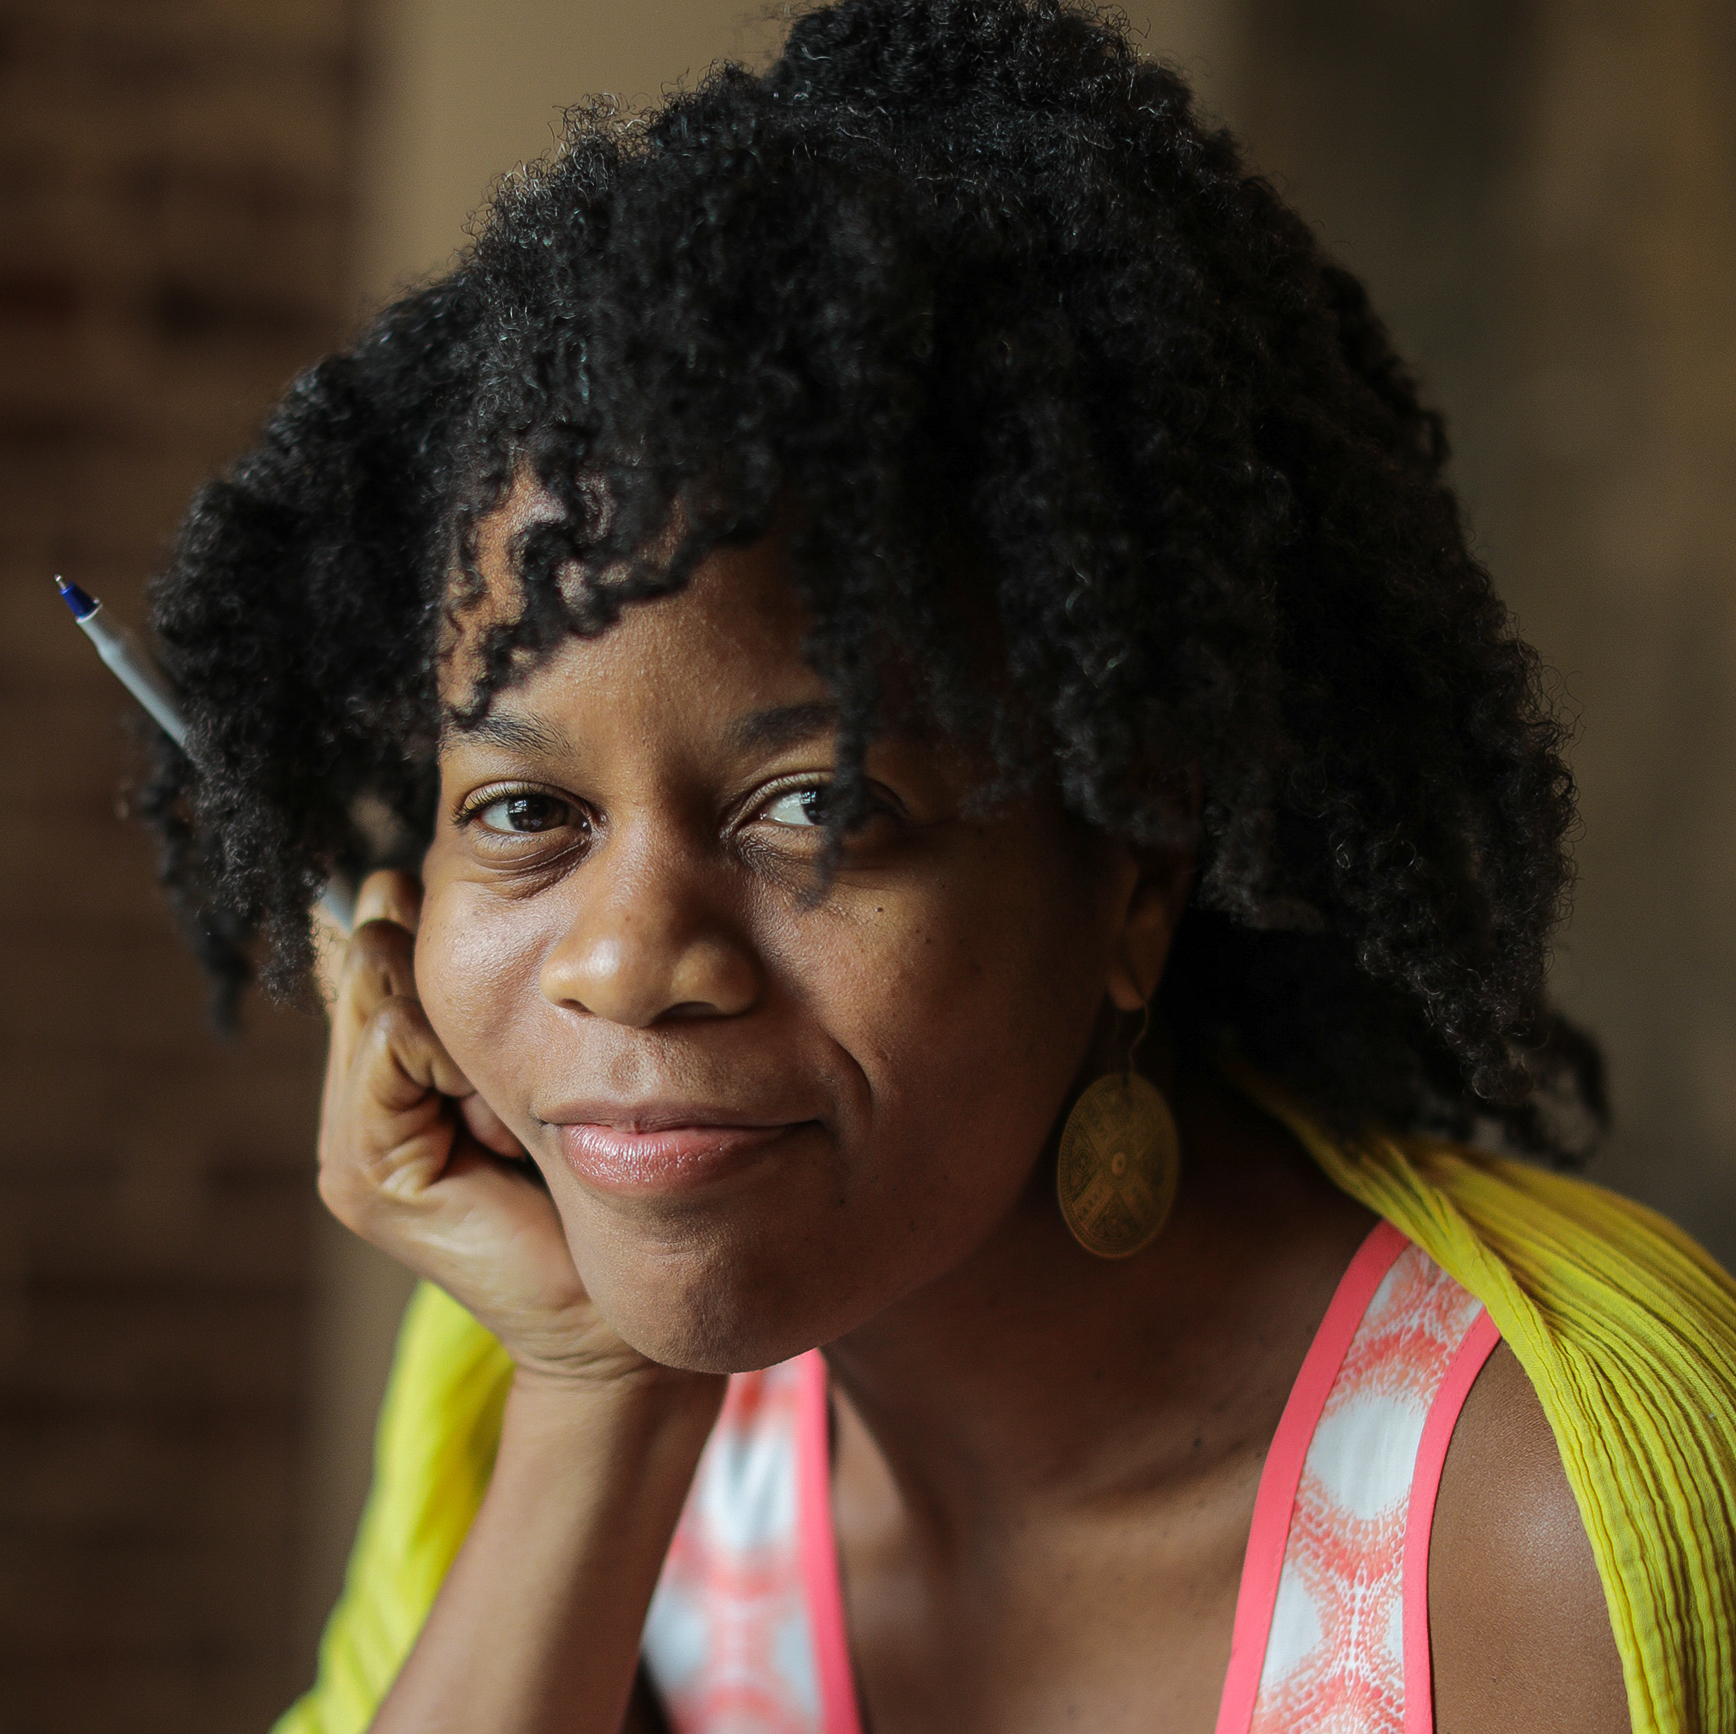 Portrait of woman with a yellow cardigan draped around her shoulders and a pink tank top underneath, she is resting her face on her hand, which is also holding a pen.